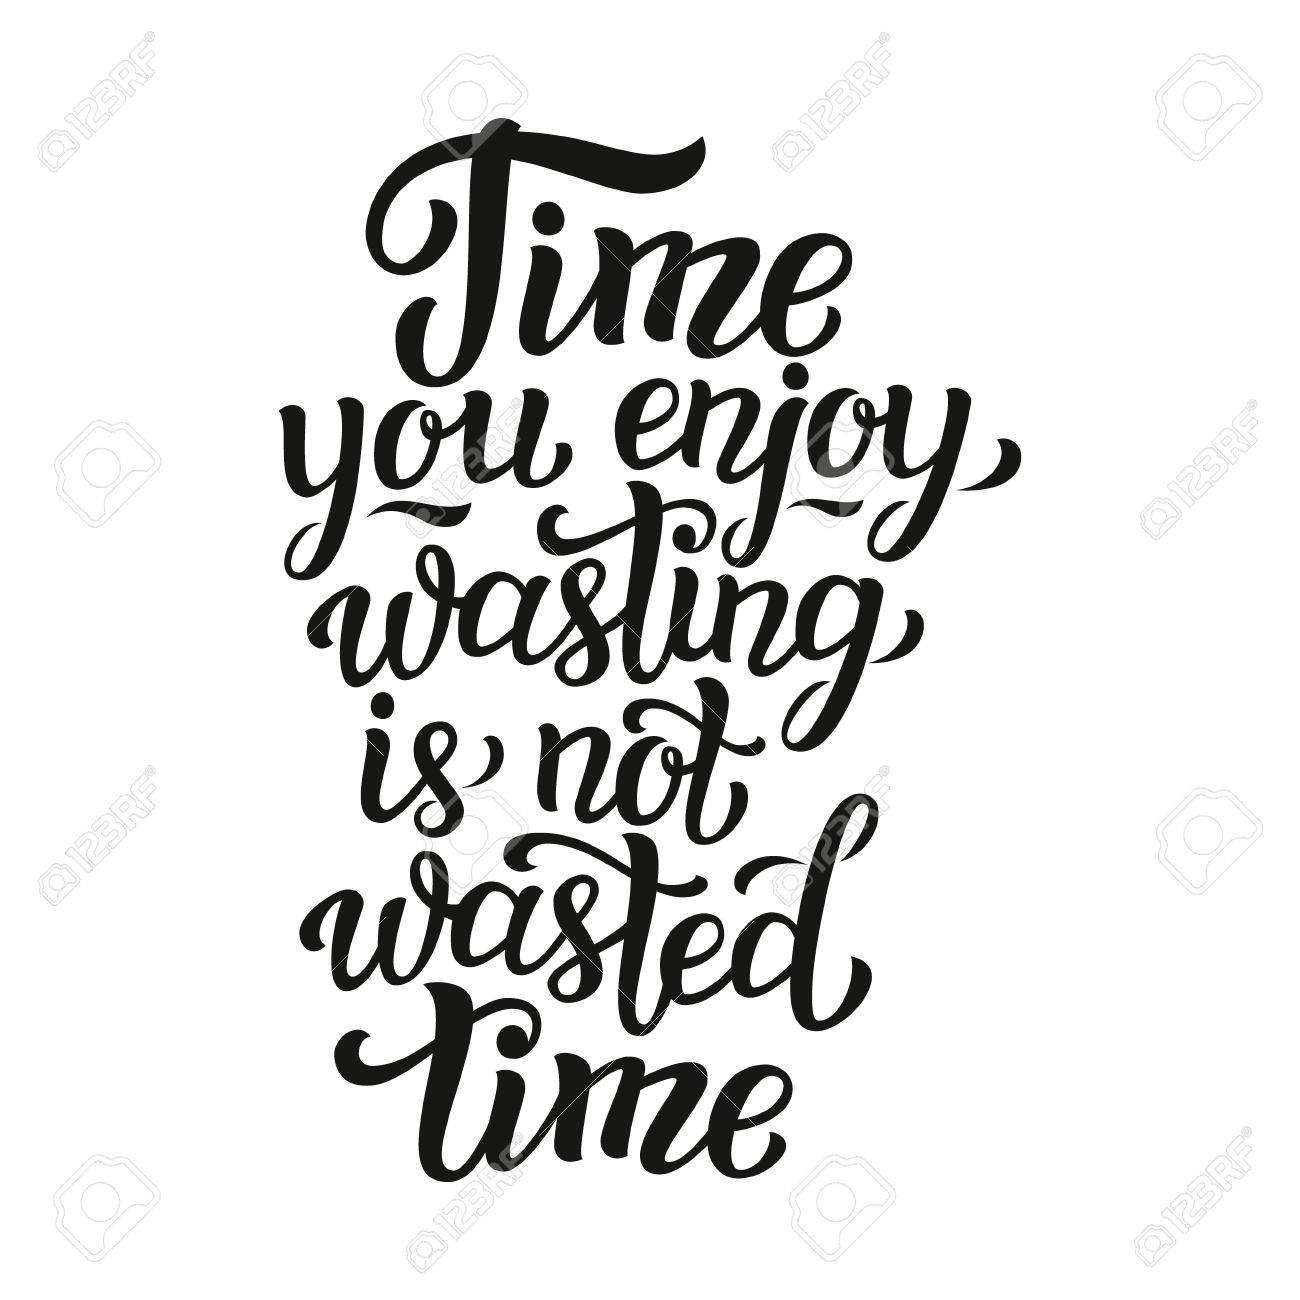 time you enjoy wasting is not wasted time lettering typography